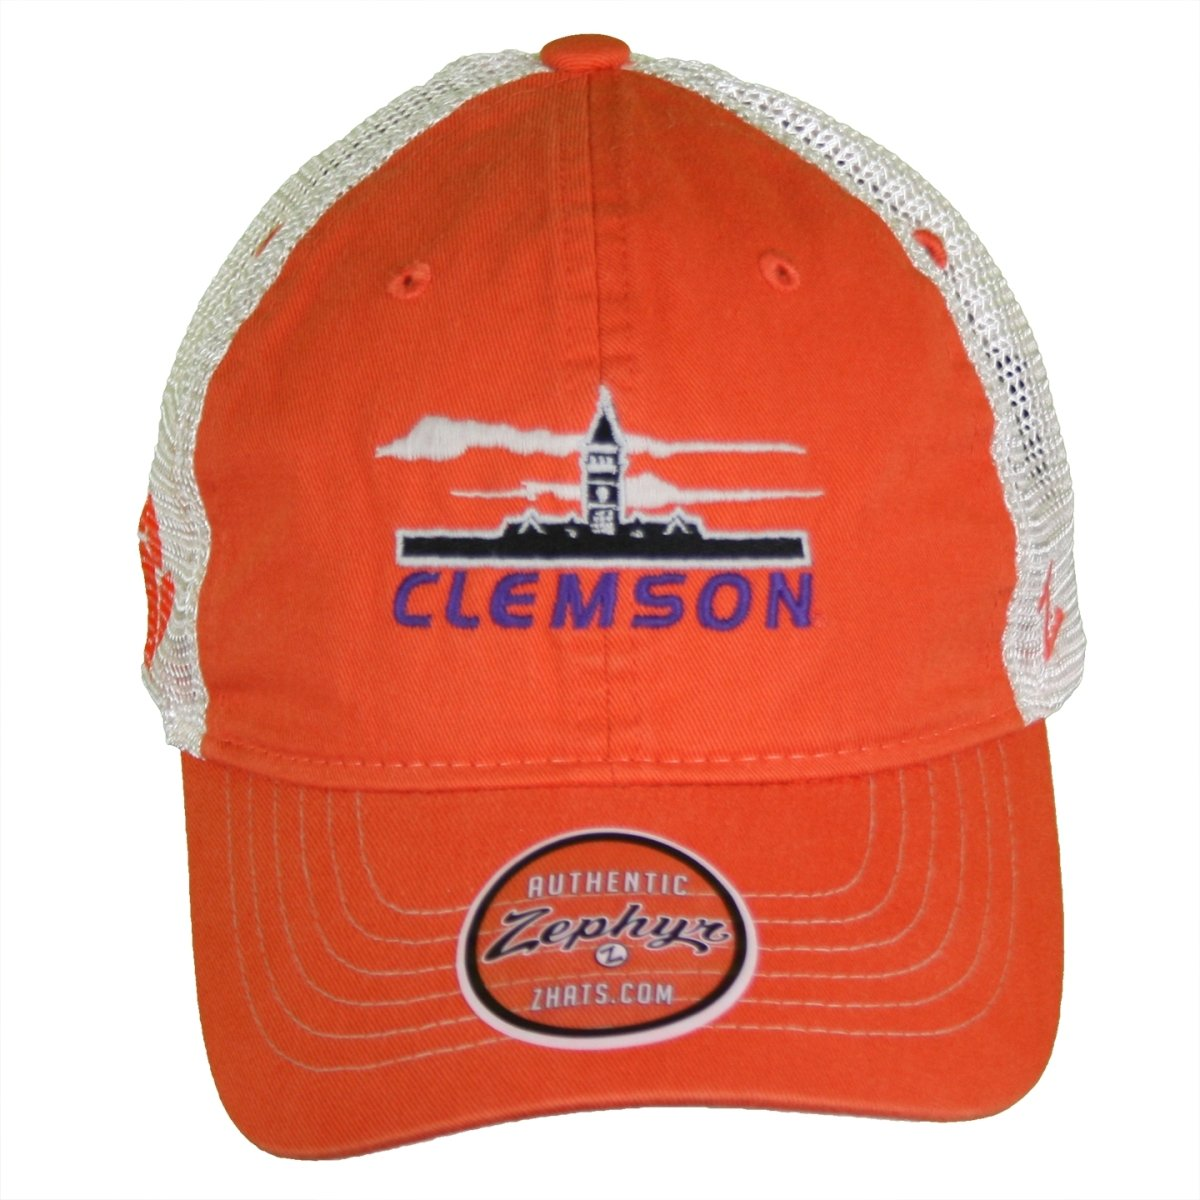 "Clemson Tigers Destination ""Tillman Hall"" Trucker Hat - Orange/Stone - Mr. Knickerbocker"